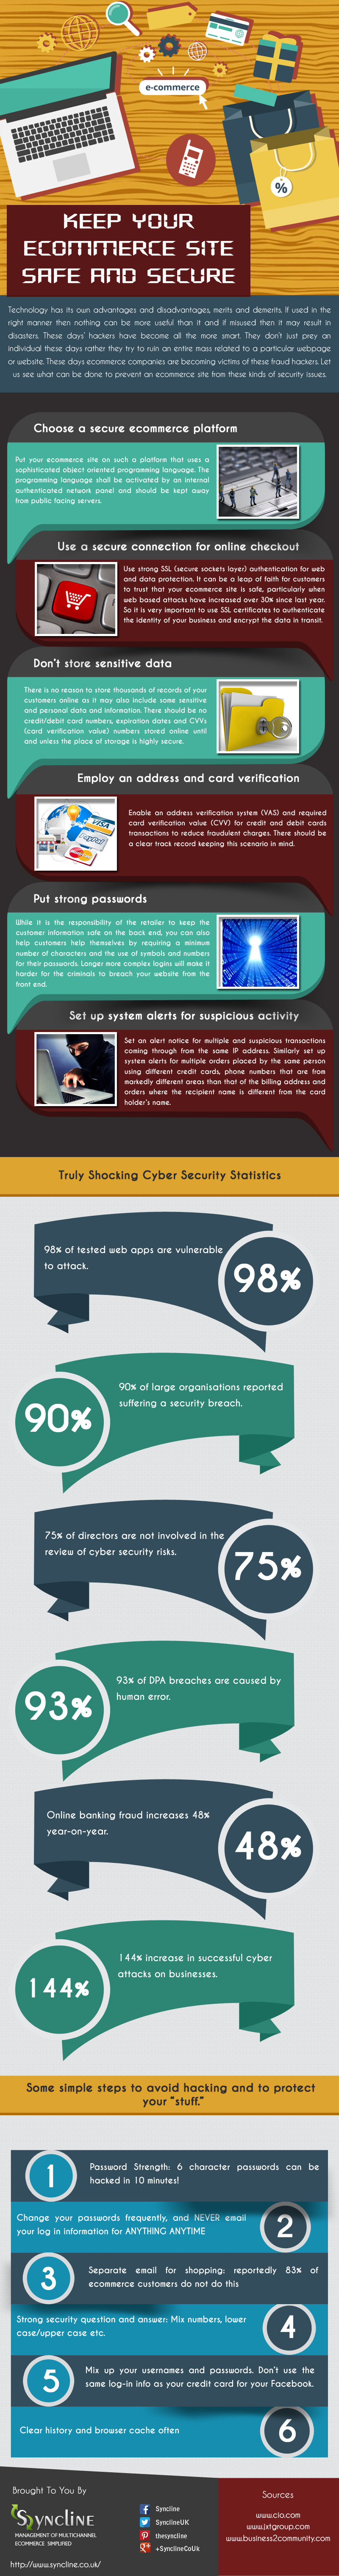 Keep Your Ecommerce Site Safe and Secure